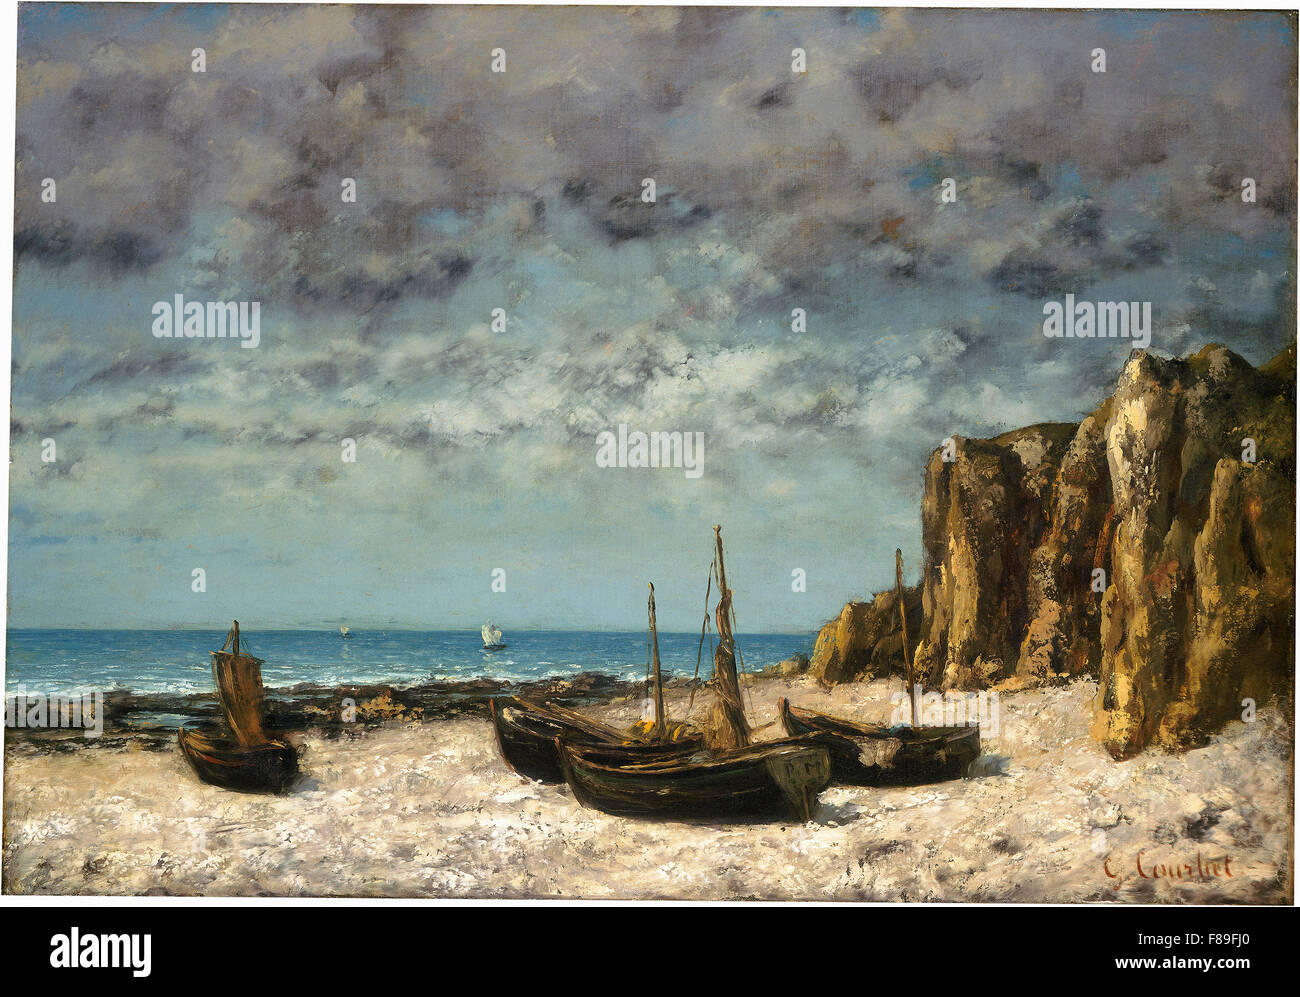 Gustave Courbet - Boats on a Beach, Etretat - Stock Image